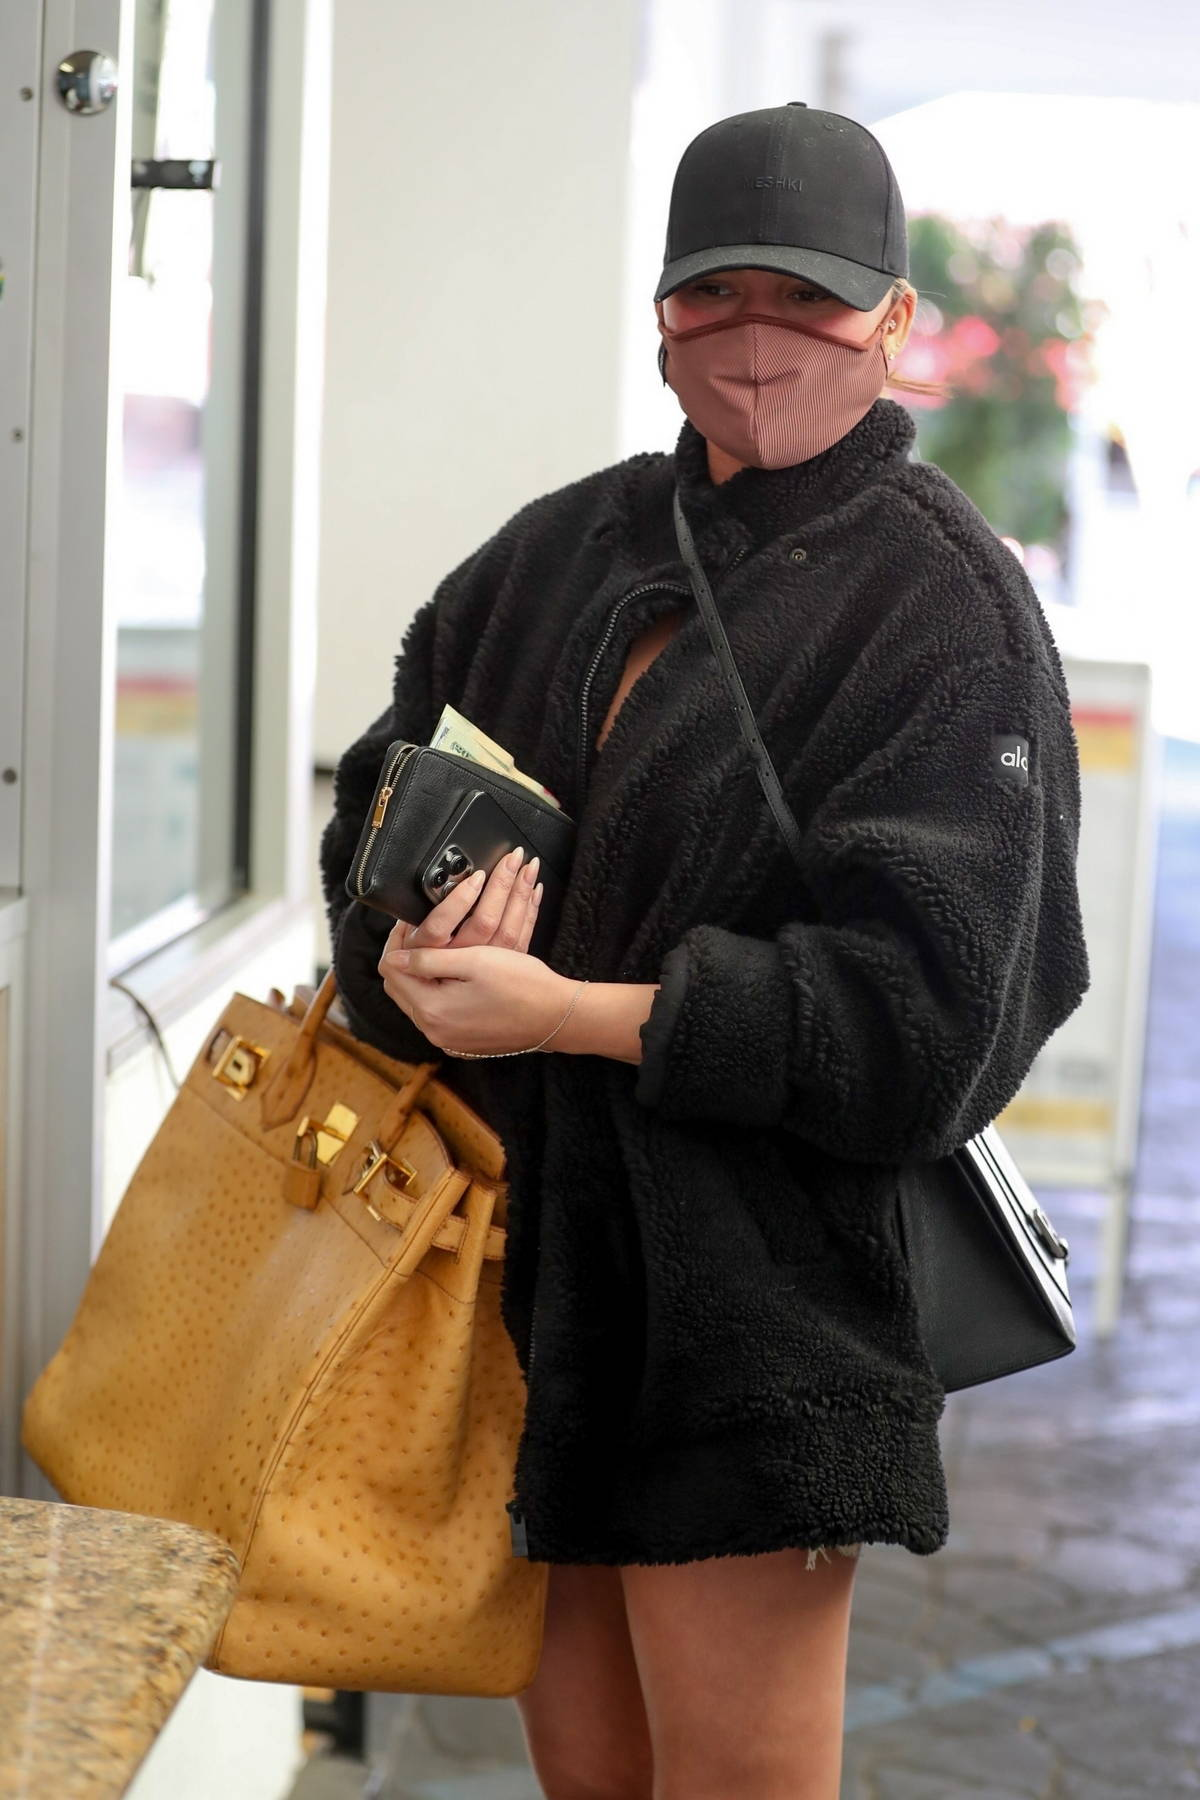 Chrissy Teigein waits for her car at the valet after a doctor's visit in Beverly Hills, California